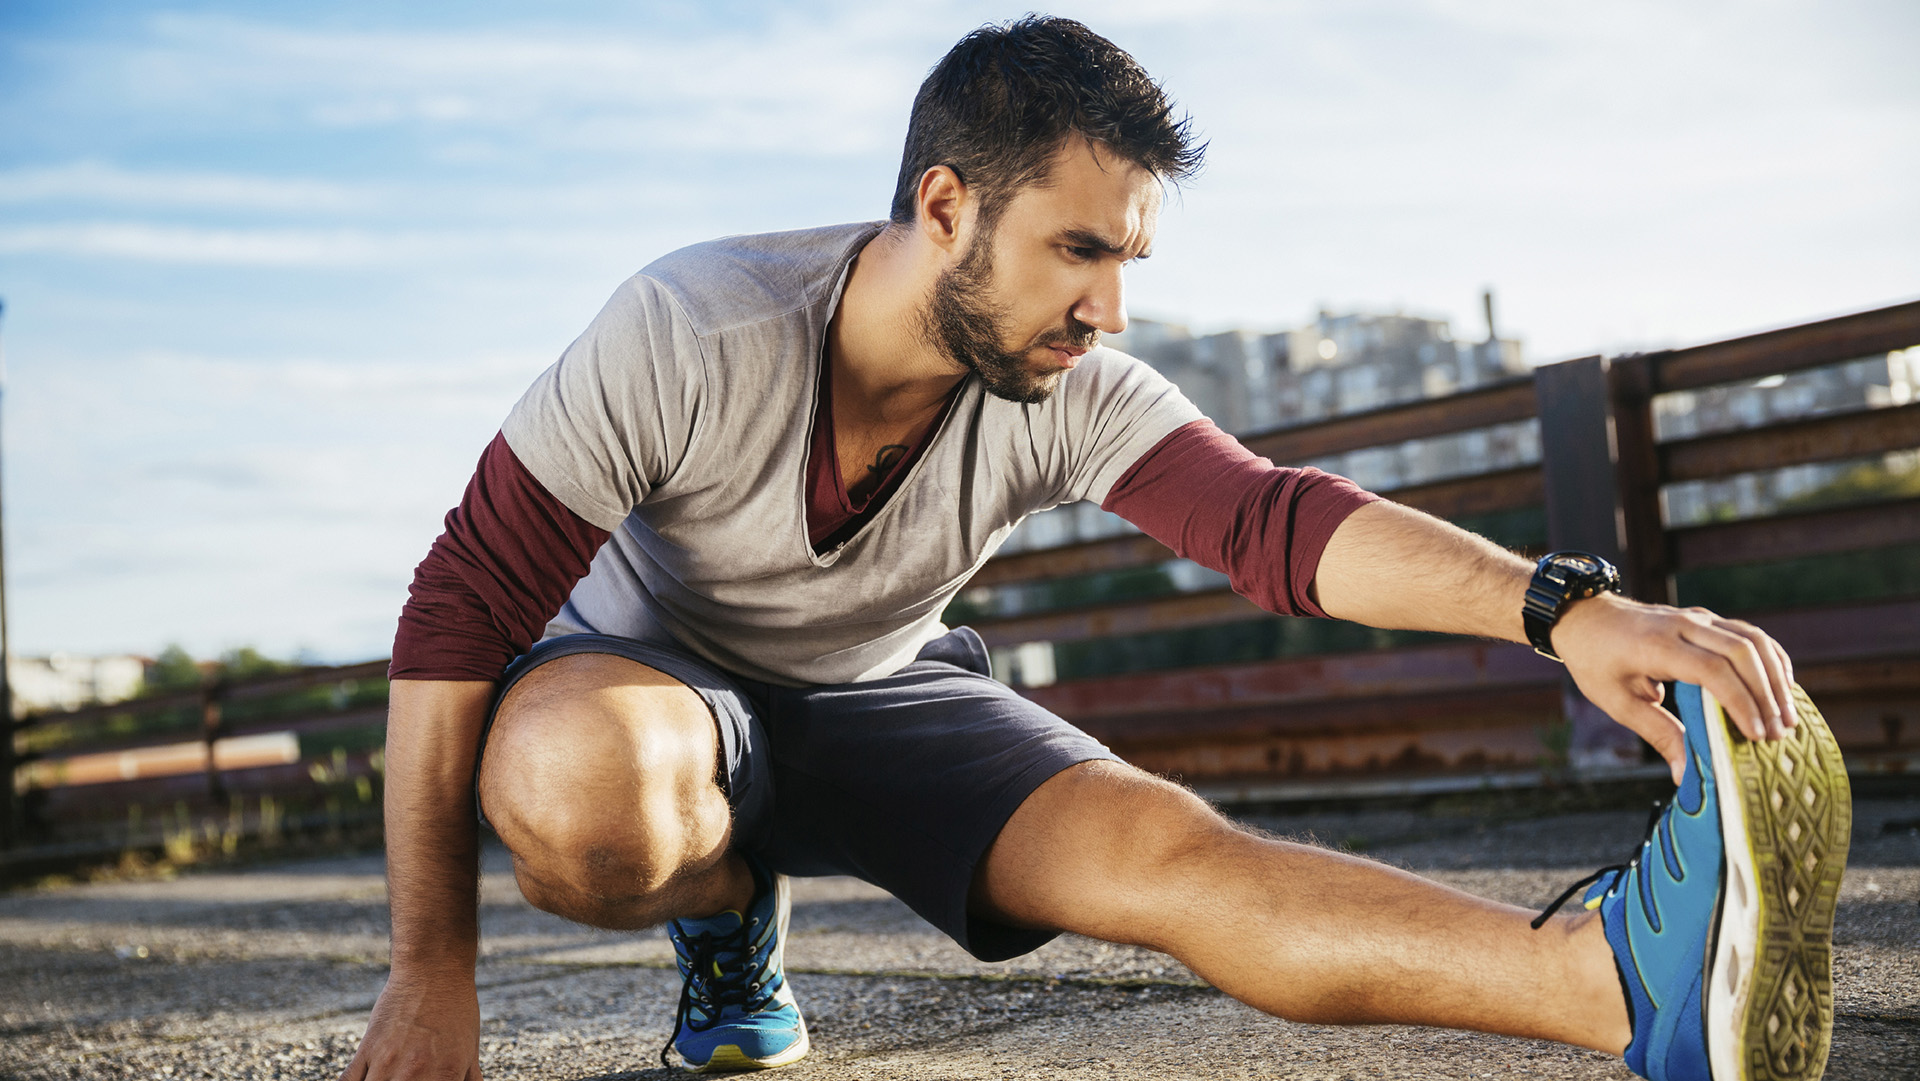 Guy_Stretching_running_istock_000064886249_large